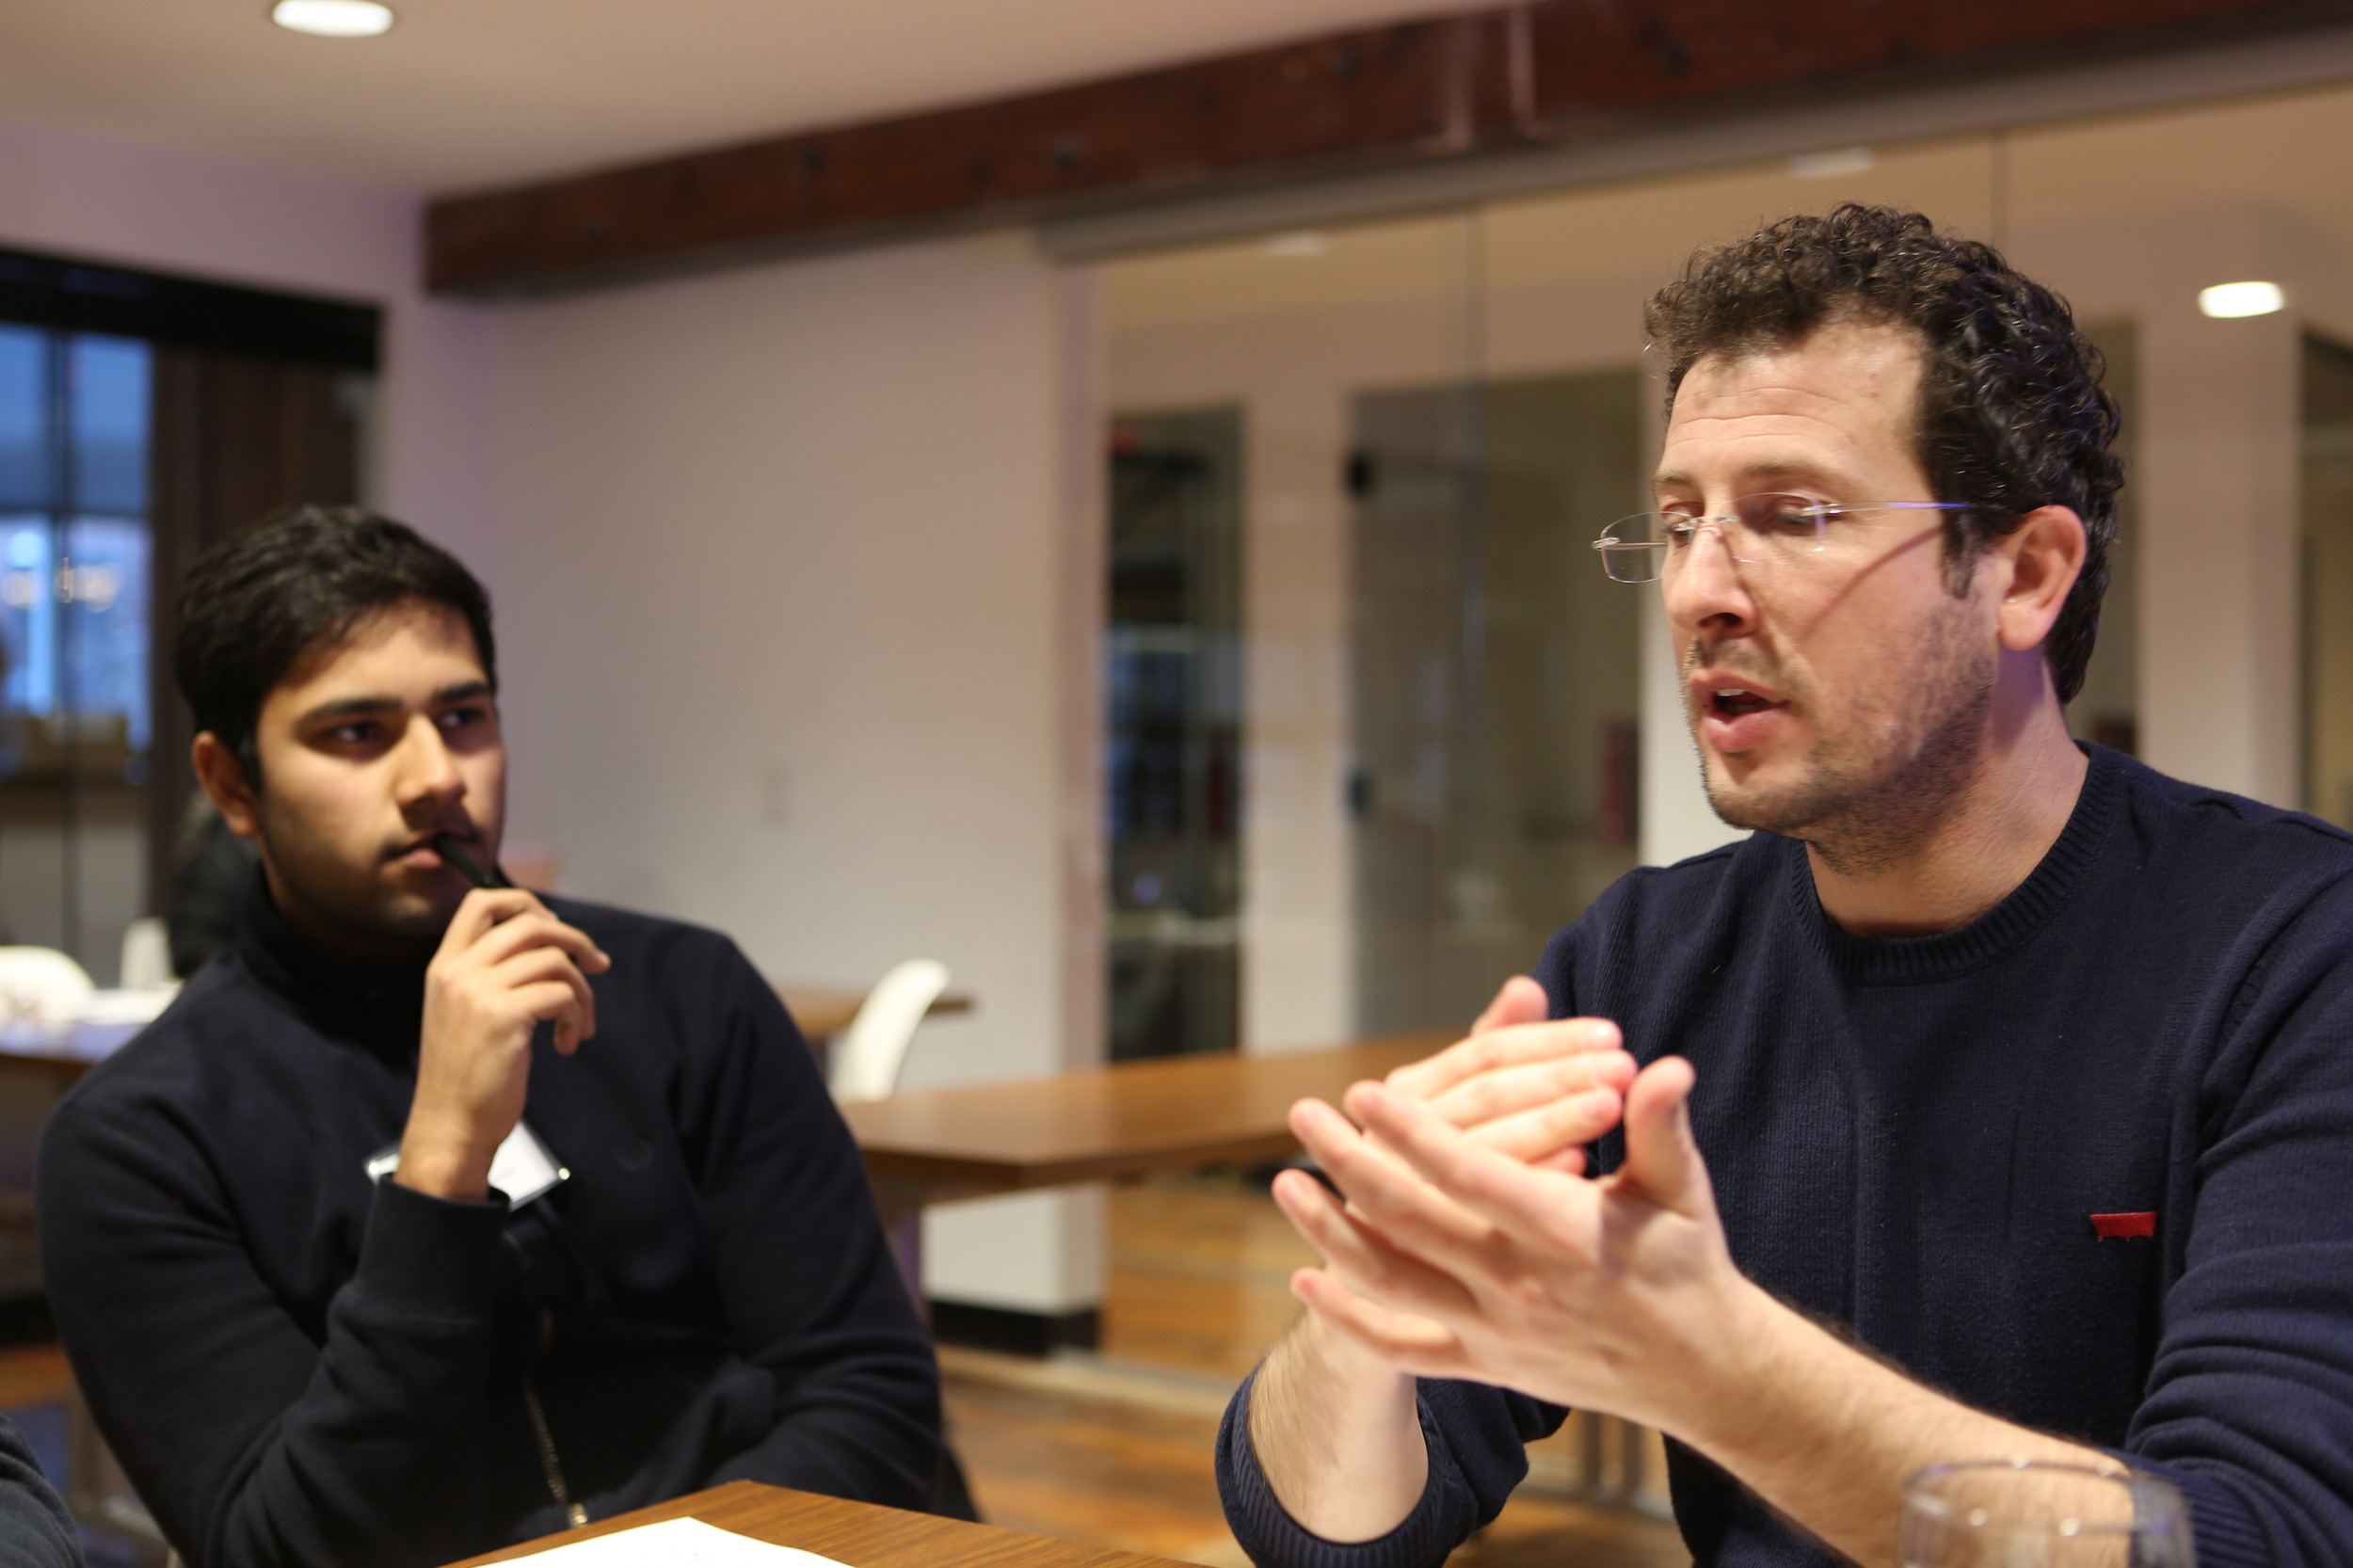 Anupam learns about Design Thinking from our visiting Turkish professor, Engin.